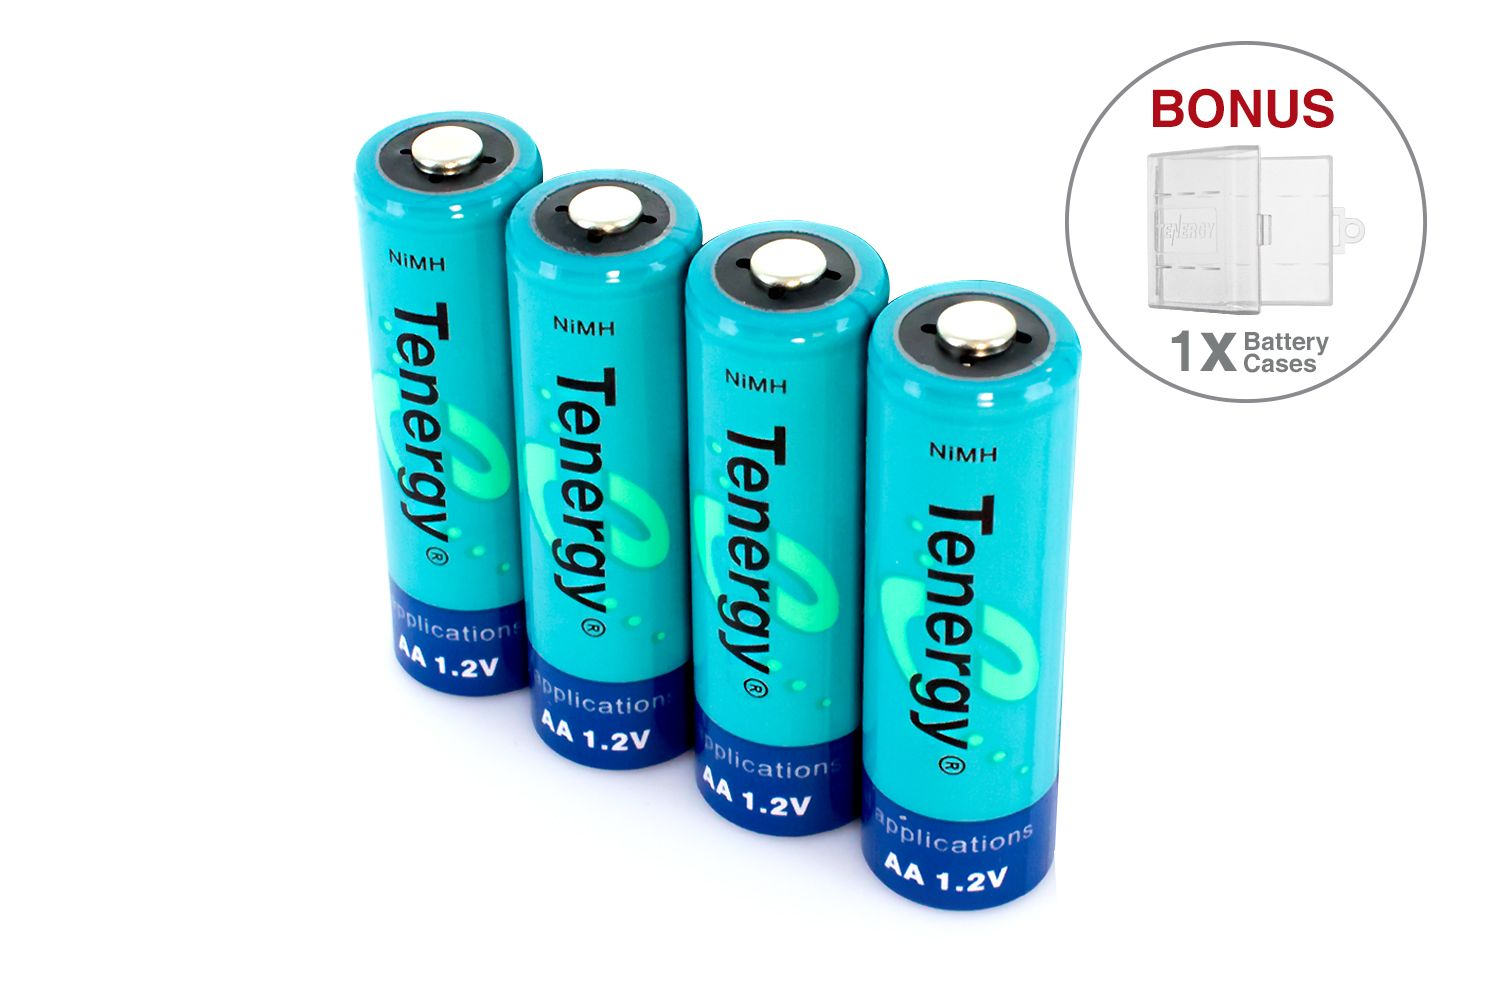 Combo 4 Pcs Tenergy Aa 2500mah Nimh Rechargeable Batteries 1 Case Nimh Rechargeable Batteries Battery Cases